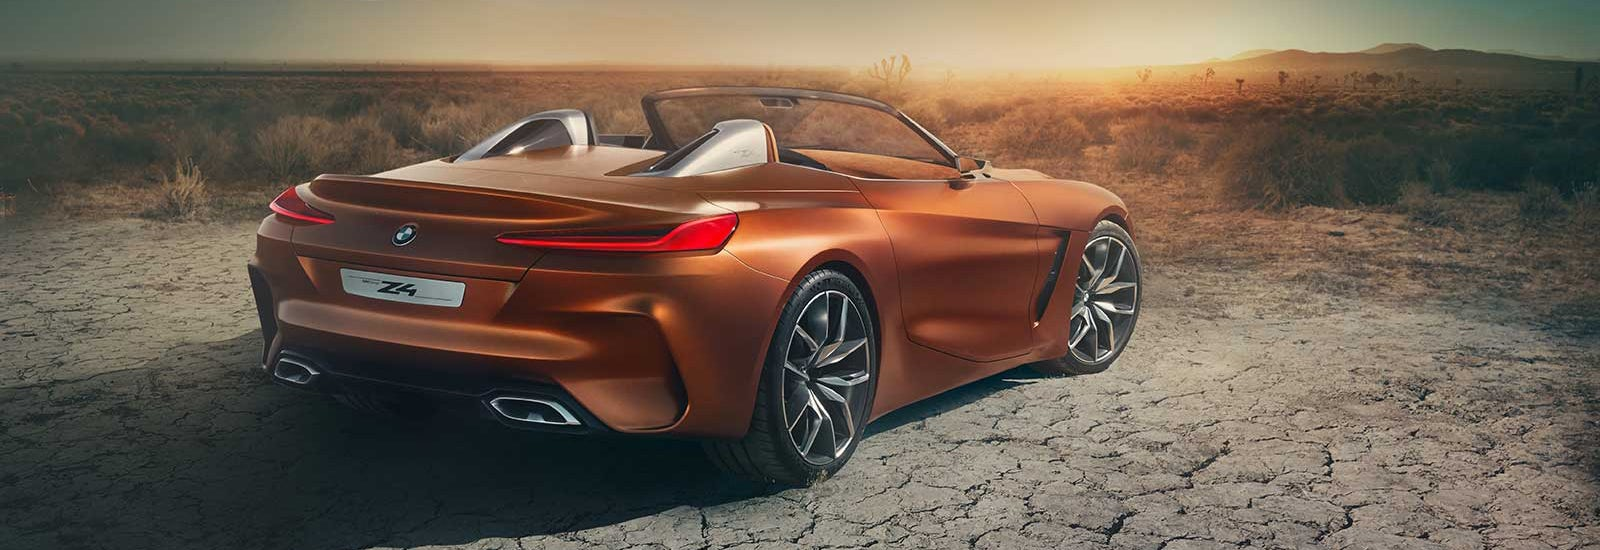 New bmw 8 series price specs release date carwow - Price And Release Date